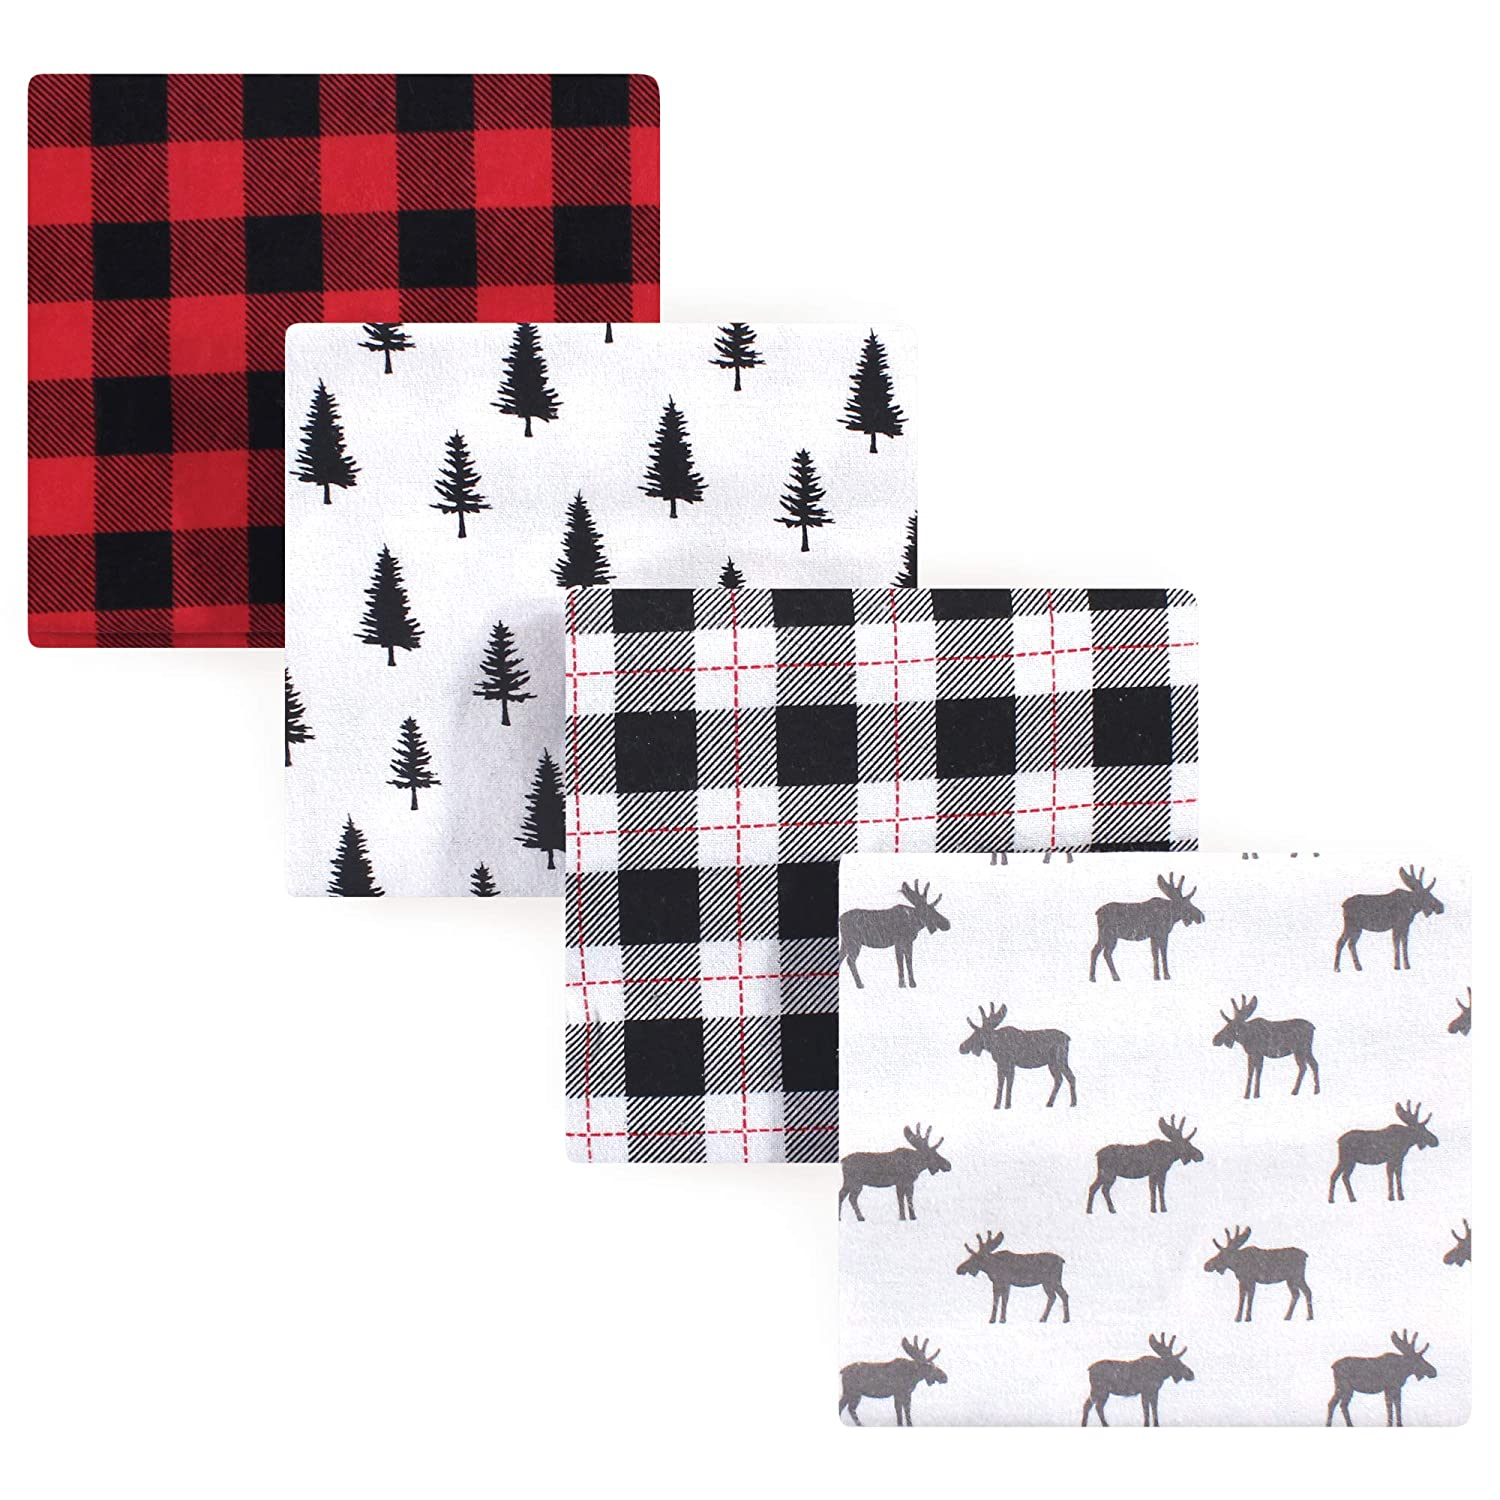 Otikiu Abominable Unisex Baby Cotton Flannel Receiving Blankets,One Size